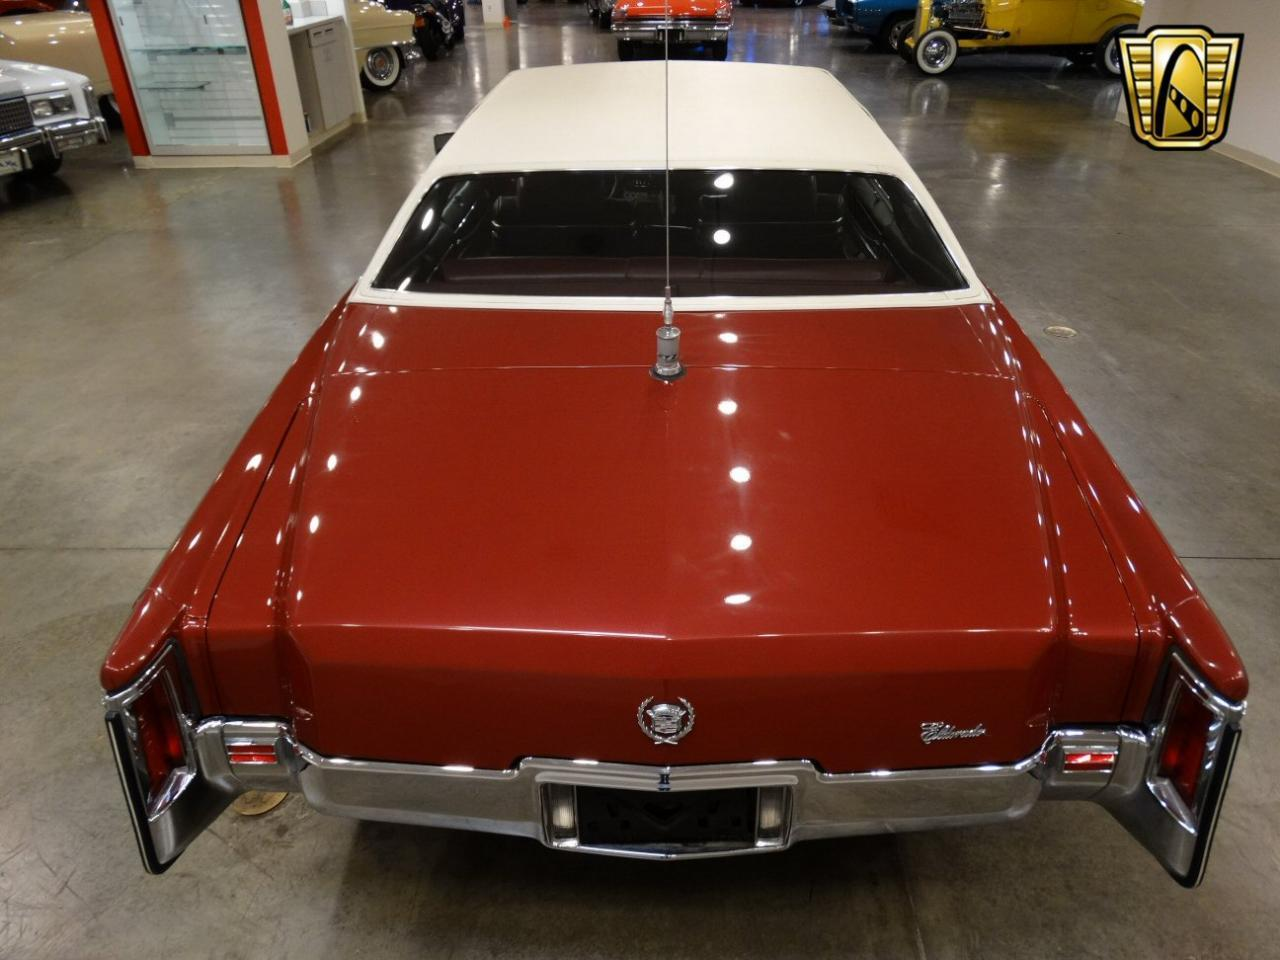 Large Picture of 1972 Cadillac Eldorado located in Illinois Offered by Gateway Classic Cars - St. Louis - KDKB